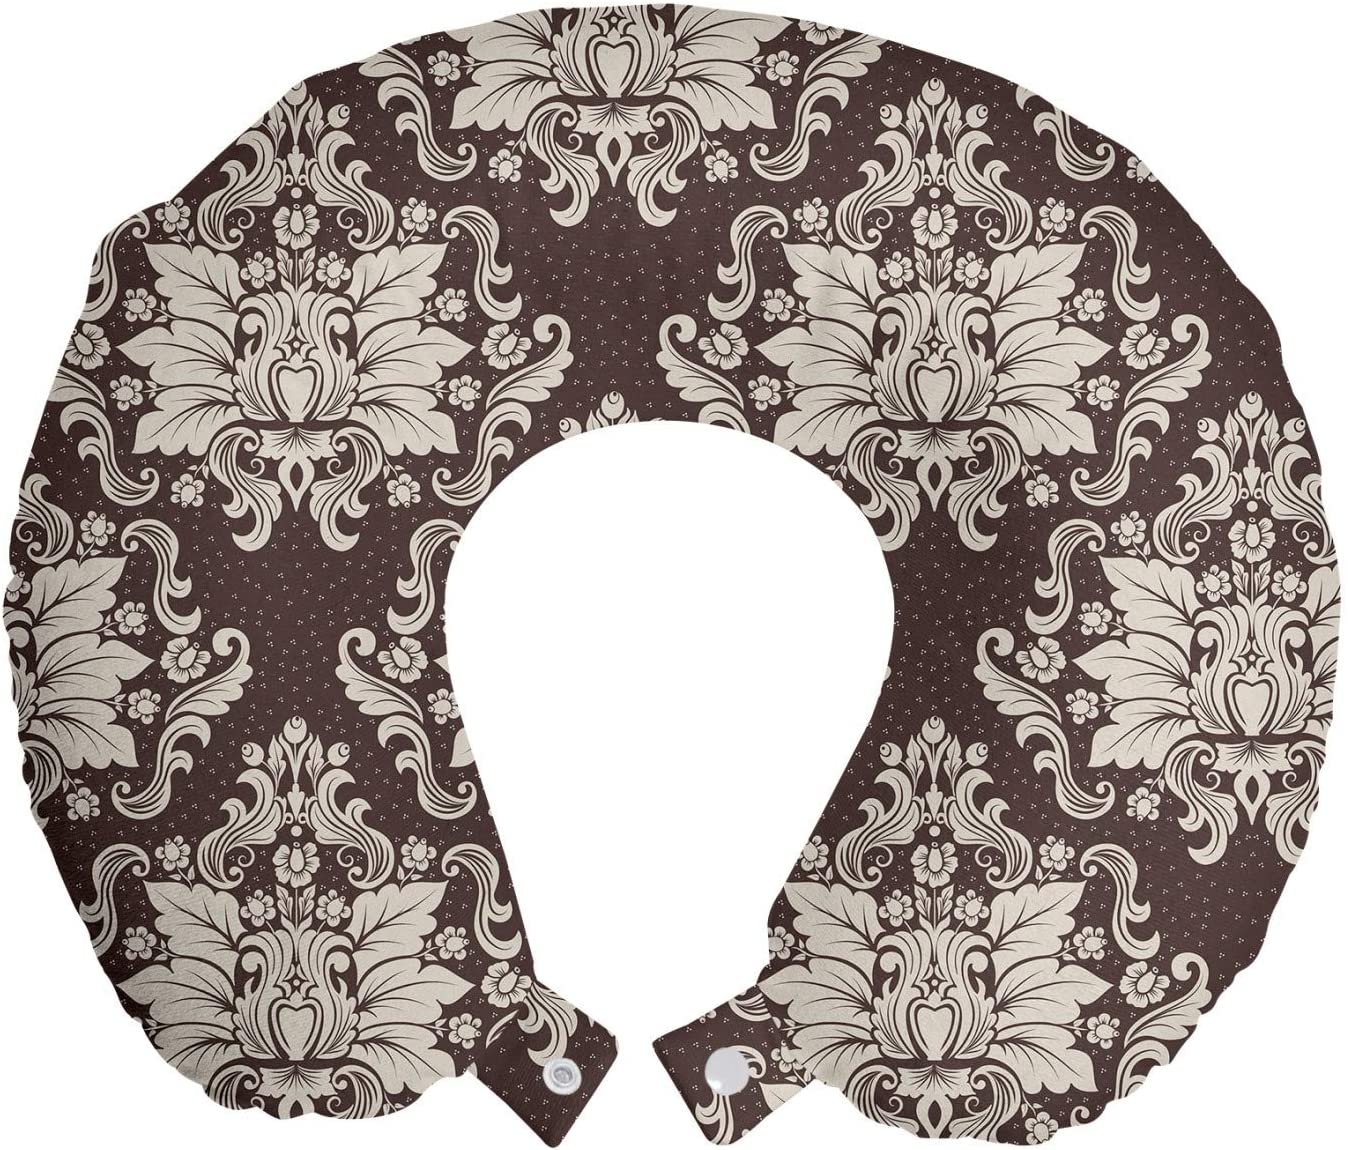 Amazon Com Ambesonne Damask Travel Pillow Neck Rest Victorian Floral Pattern With Blooming Foliage Leaves On Dark Toned Backdrop Memory Foam Traveling Accessory For Airplane And Car 12 Brown And Beige Home